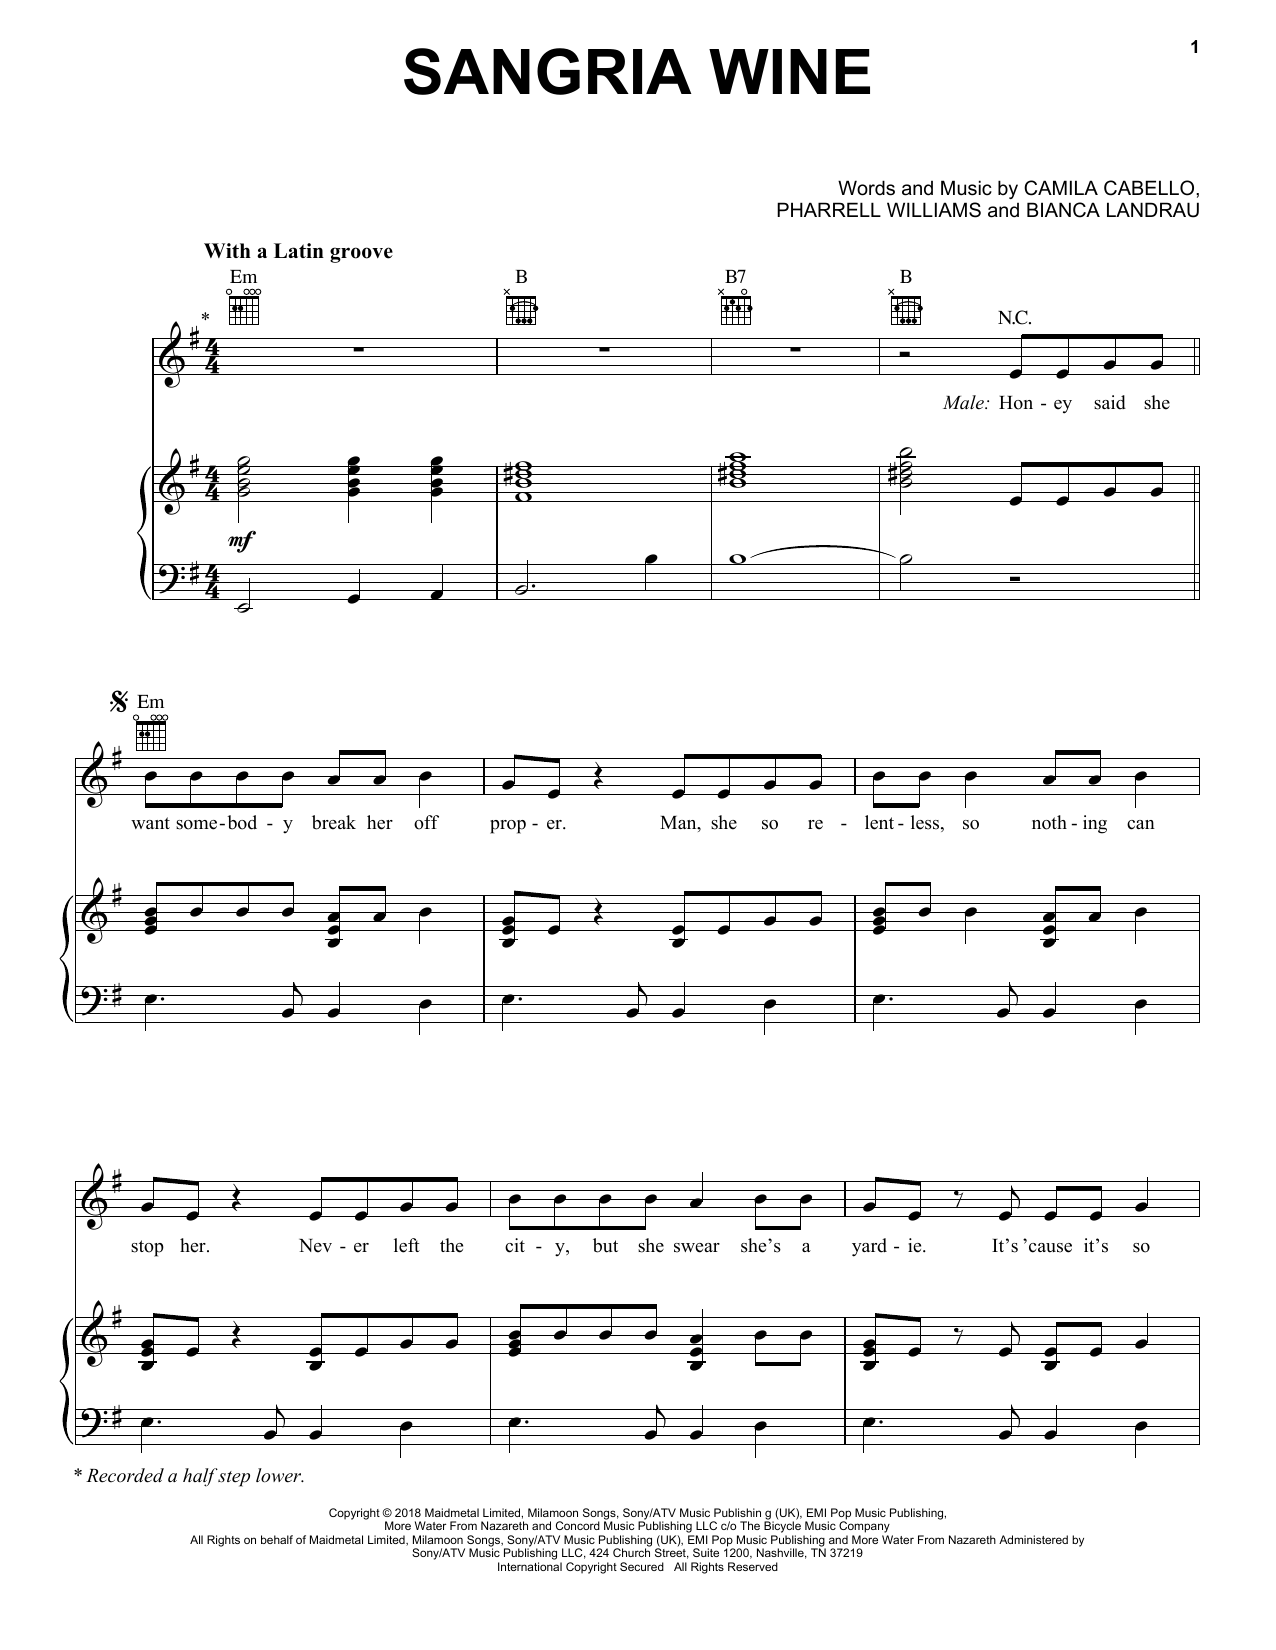 Camila Cabello and Pharrell Williams Sangria Wine sheet music notes and chords